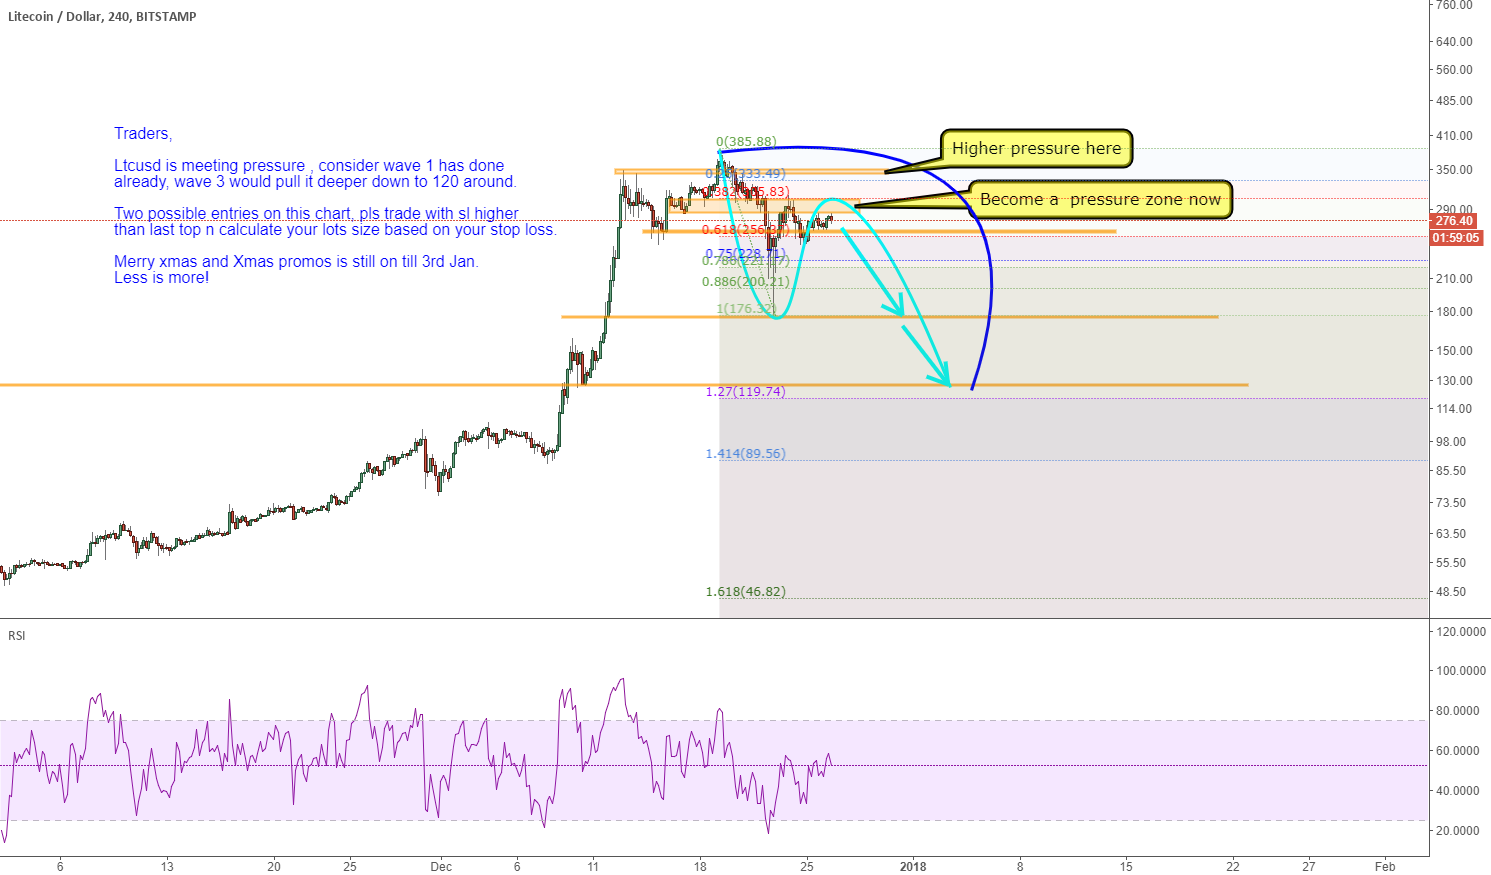 Ltcusd:  wave 3 would pull it deeper down to 120 around